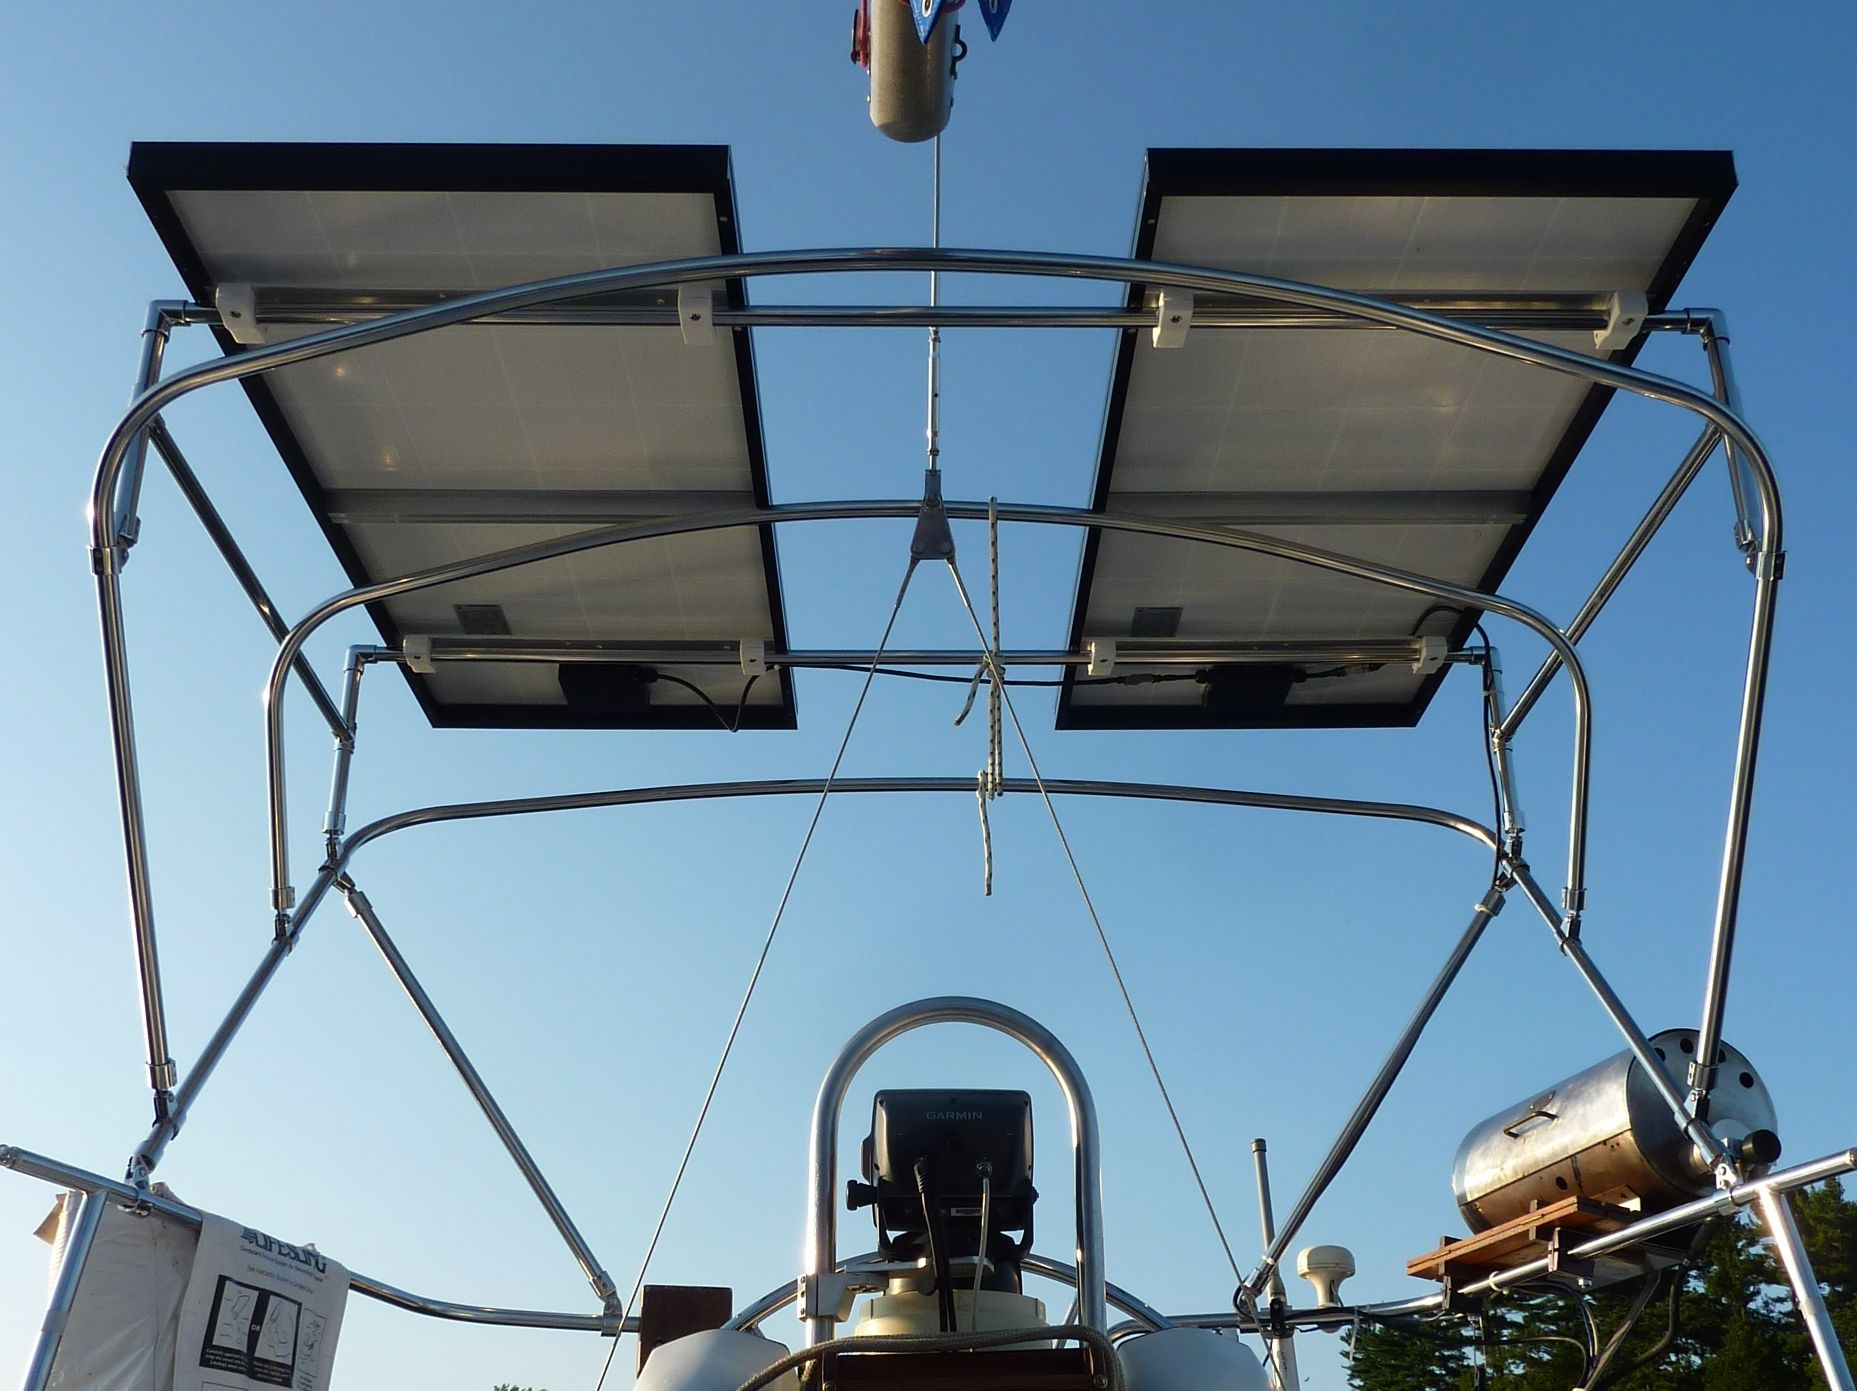 Pin by Lost Found on Sailing in 2019 | Solar energy for home